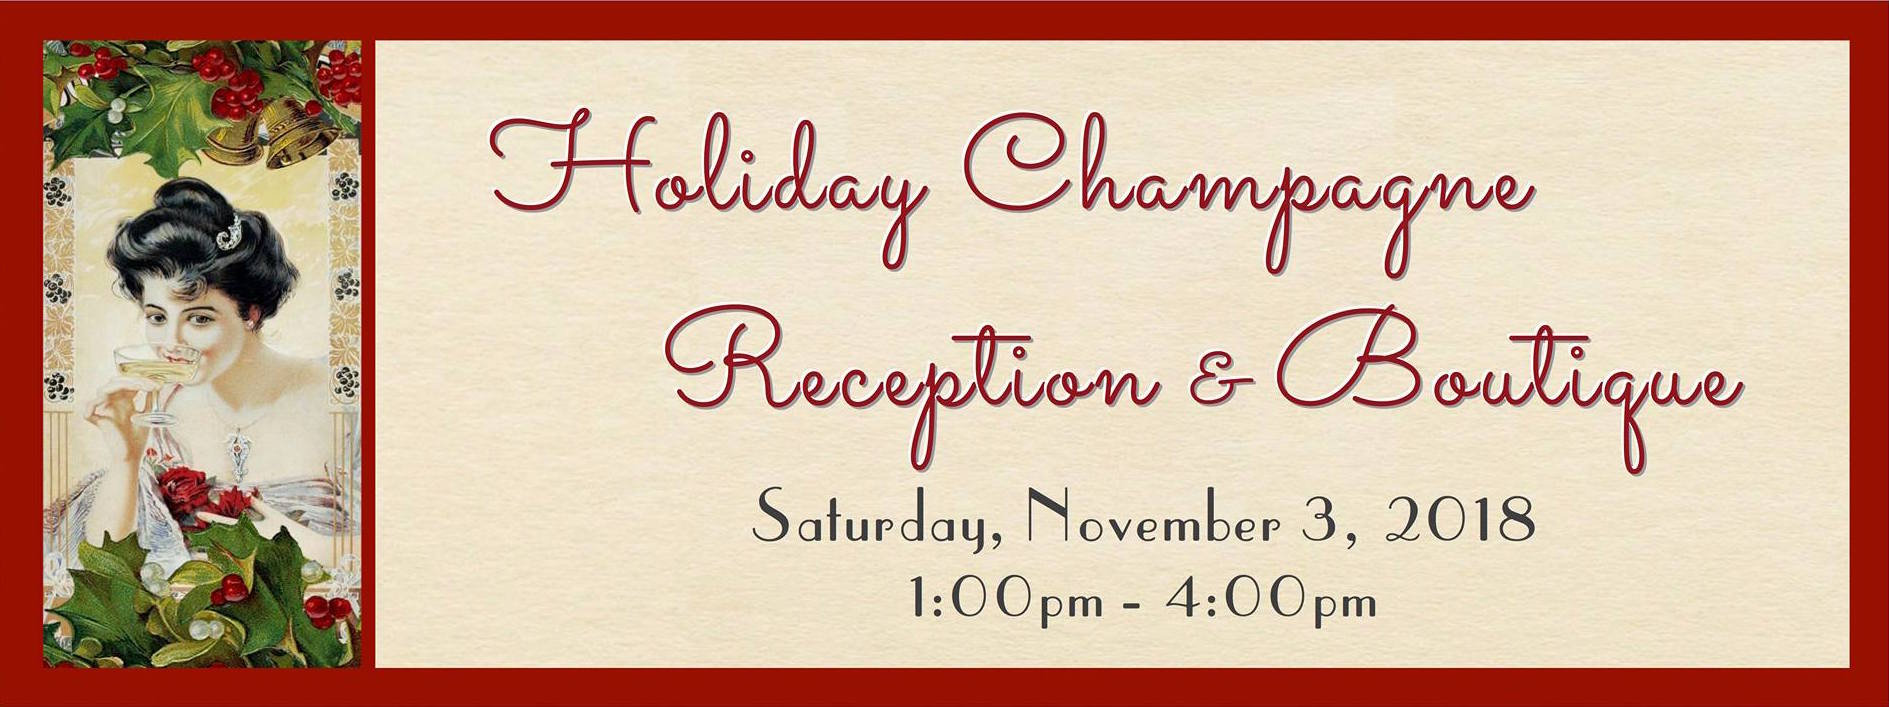 SSF Historical Society Announces 2018 Holiday Champagne Reception and Boutique Set for November 3rd